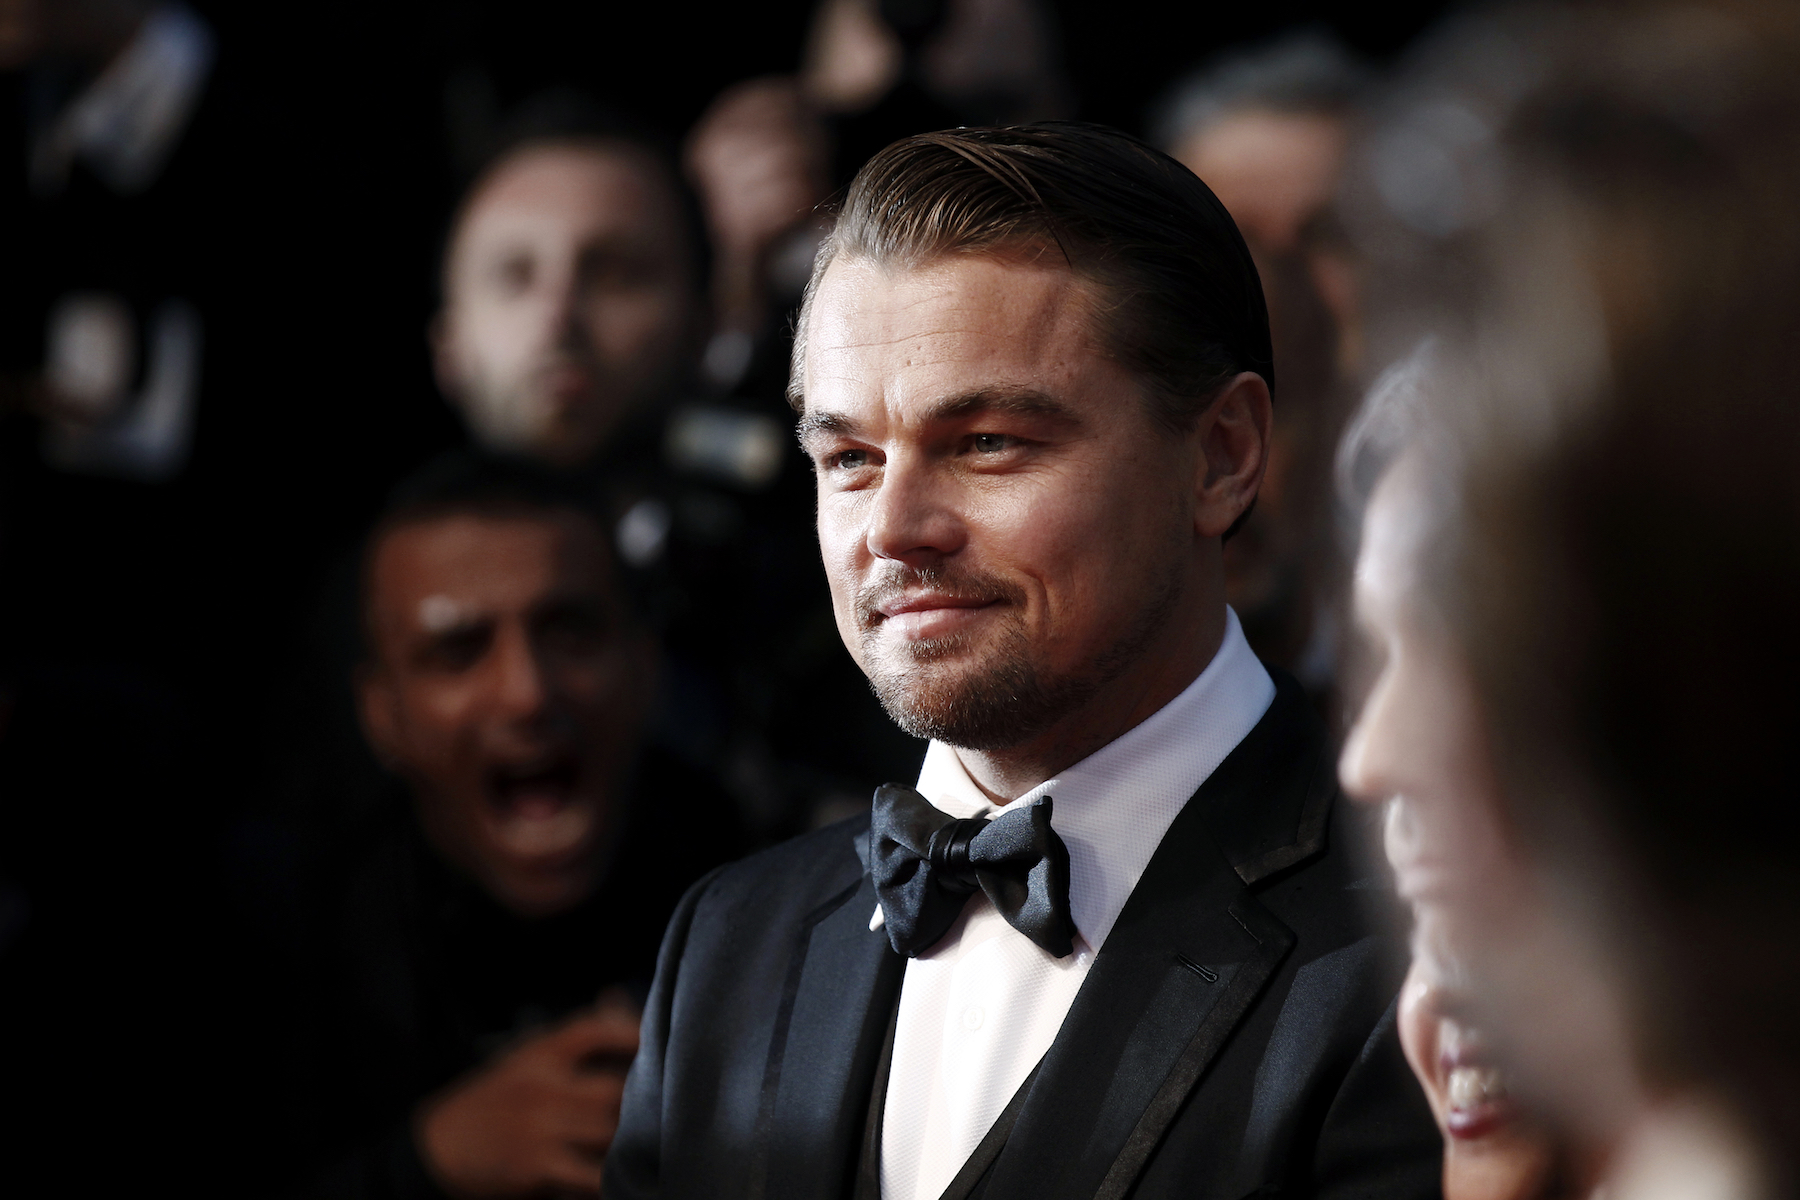 Leonardo DiCaprio talks about all the times (yes, multiple) he's almost died